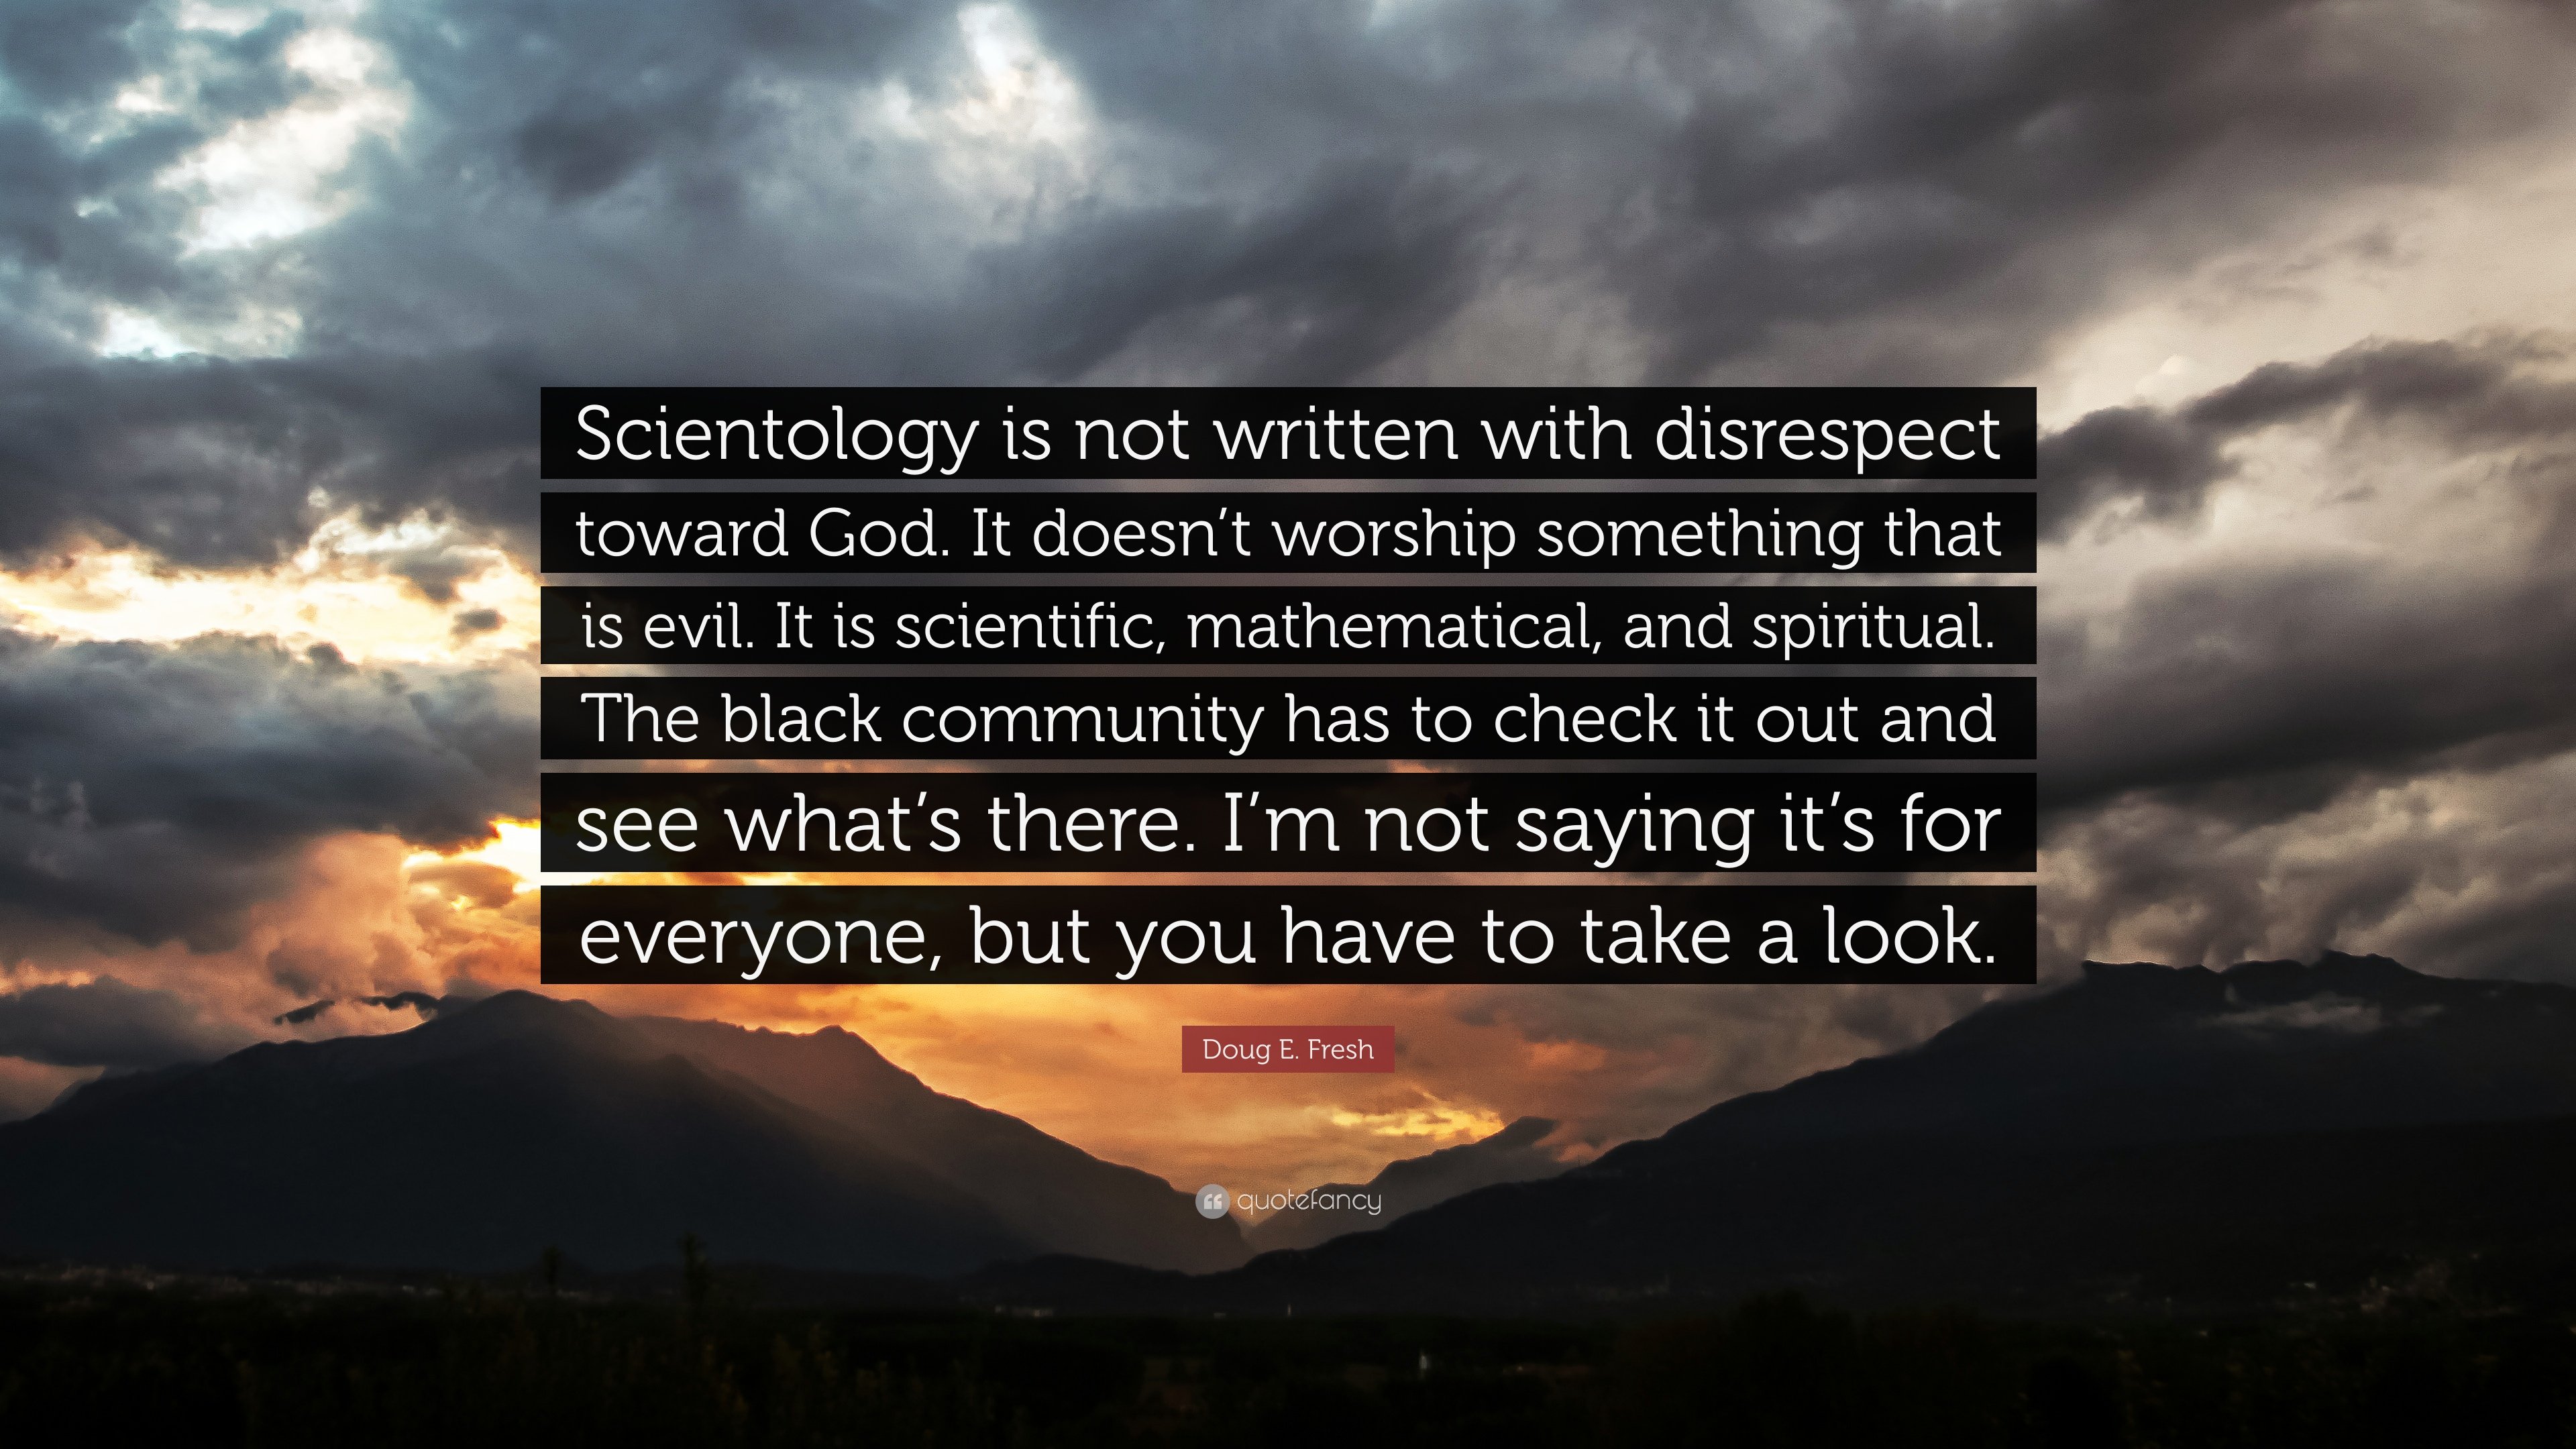 doug e fresh quote scientology is not written with disrespect